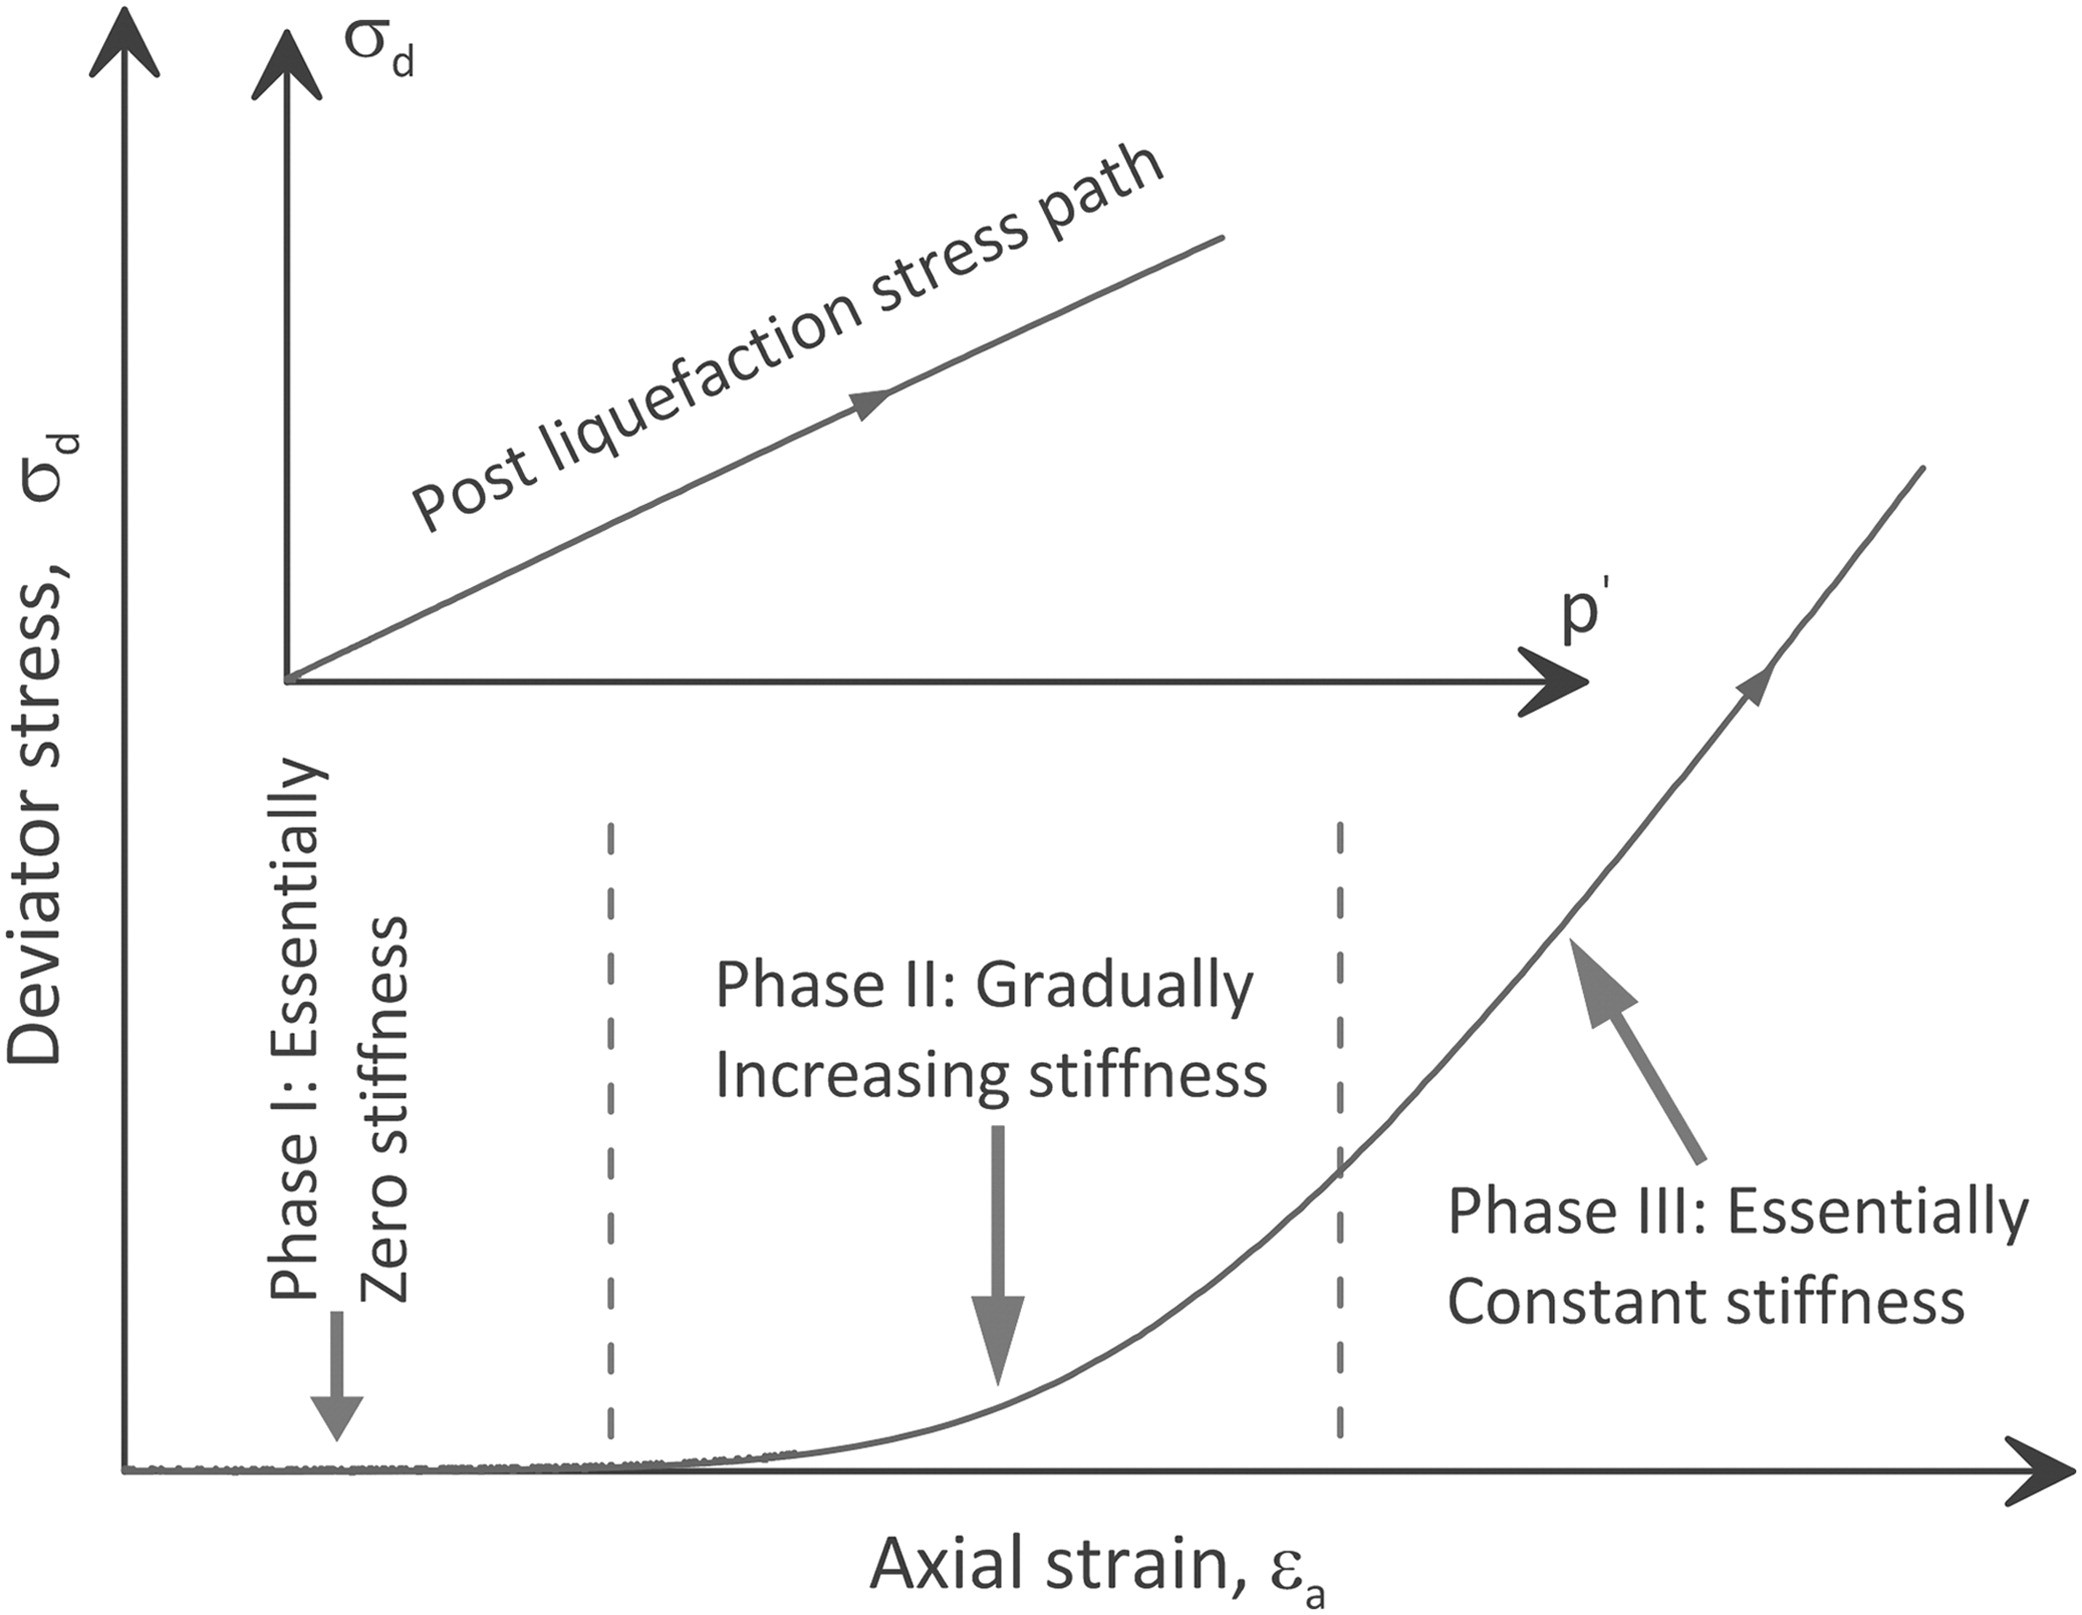 Engineering Stress Strain Diagram Influence Of Strain History On Postliquefaction Deformation Of Engineering Stress Strain Diagram